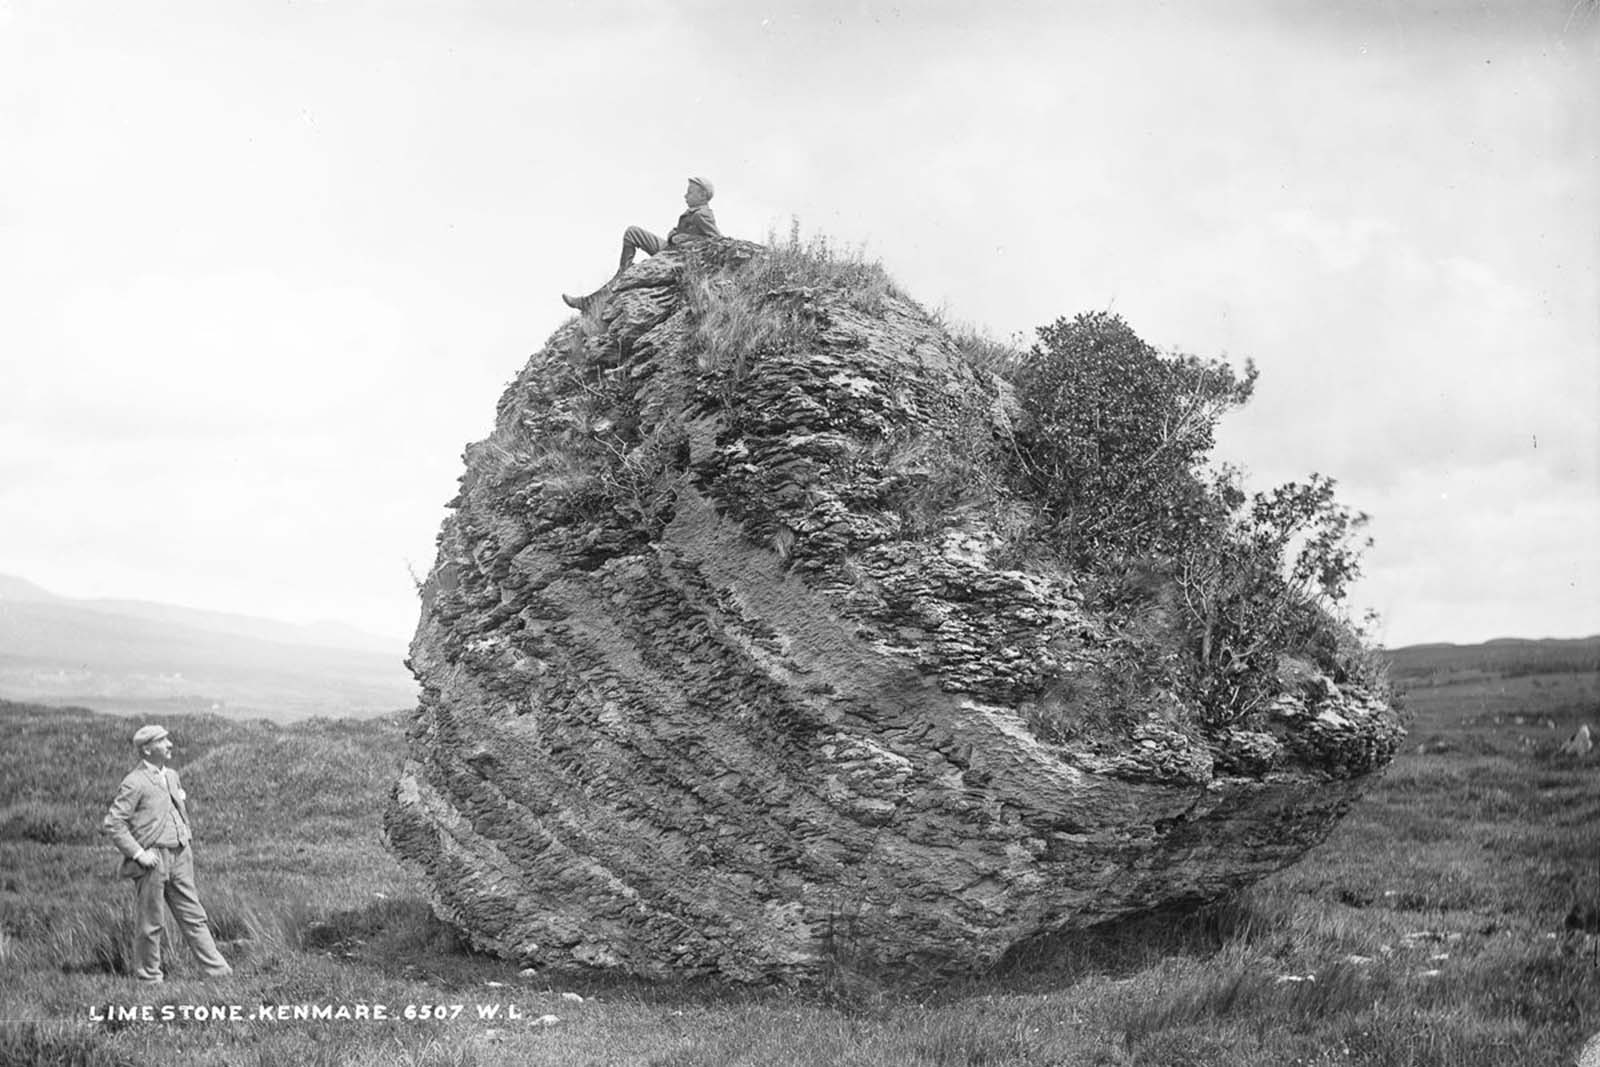 The Cloghvorra Stone, near Kenmare. 1890.